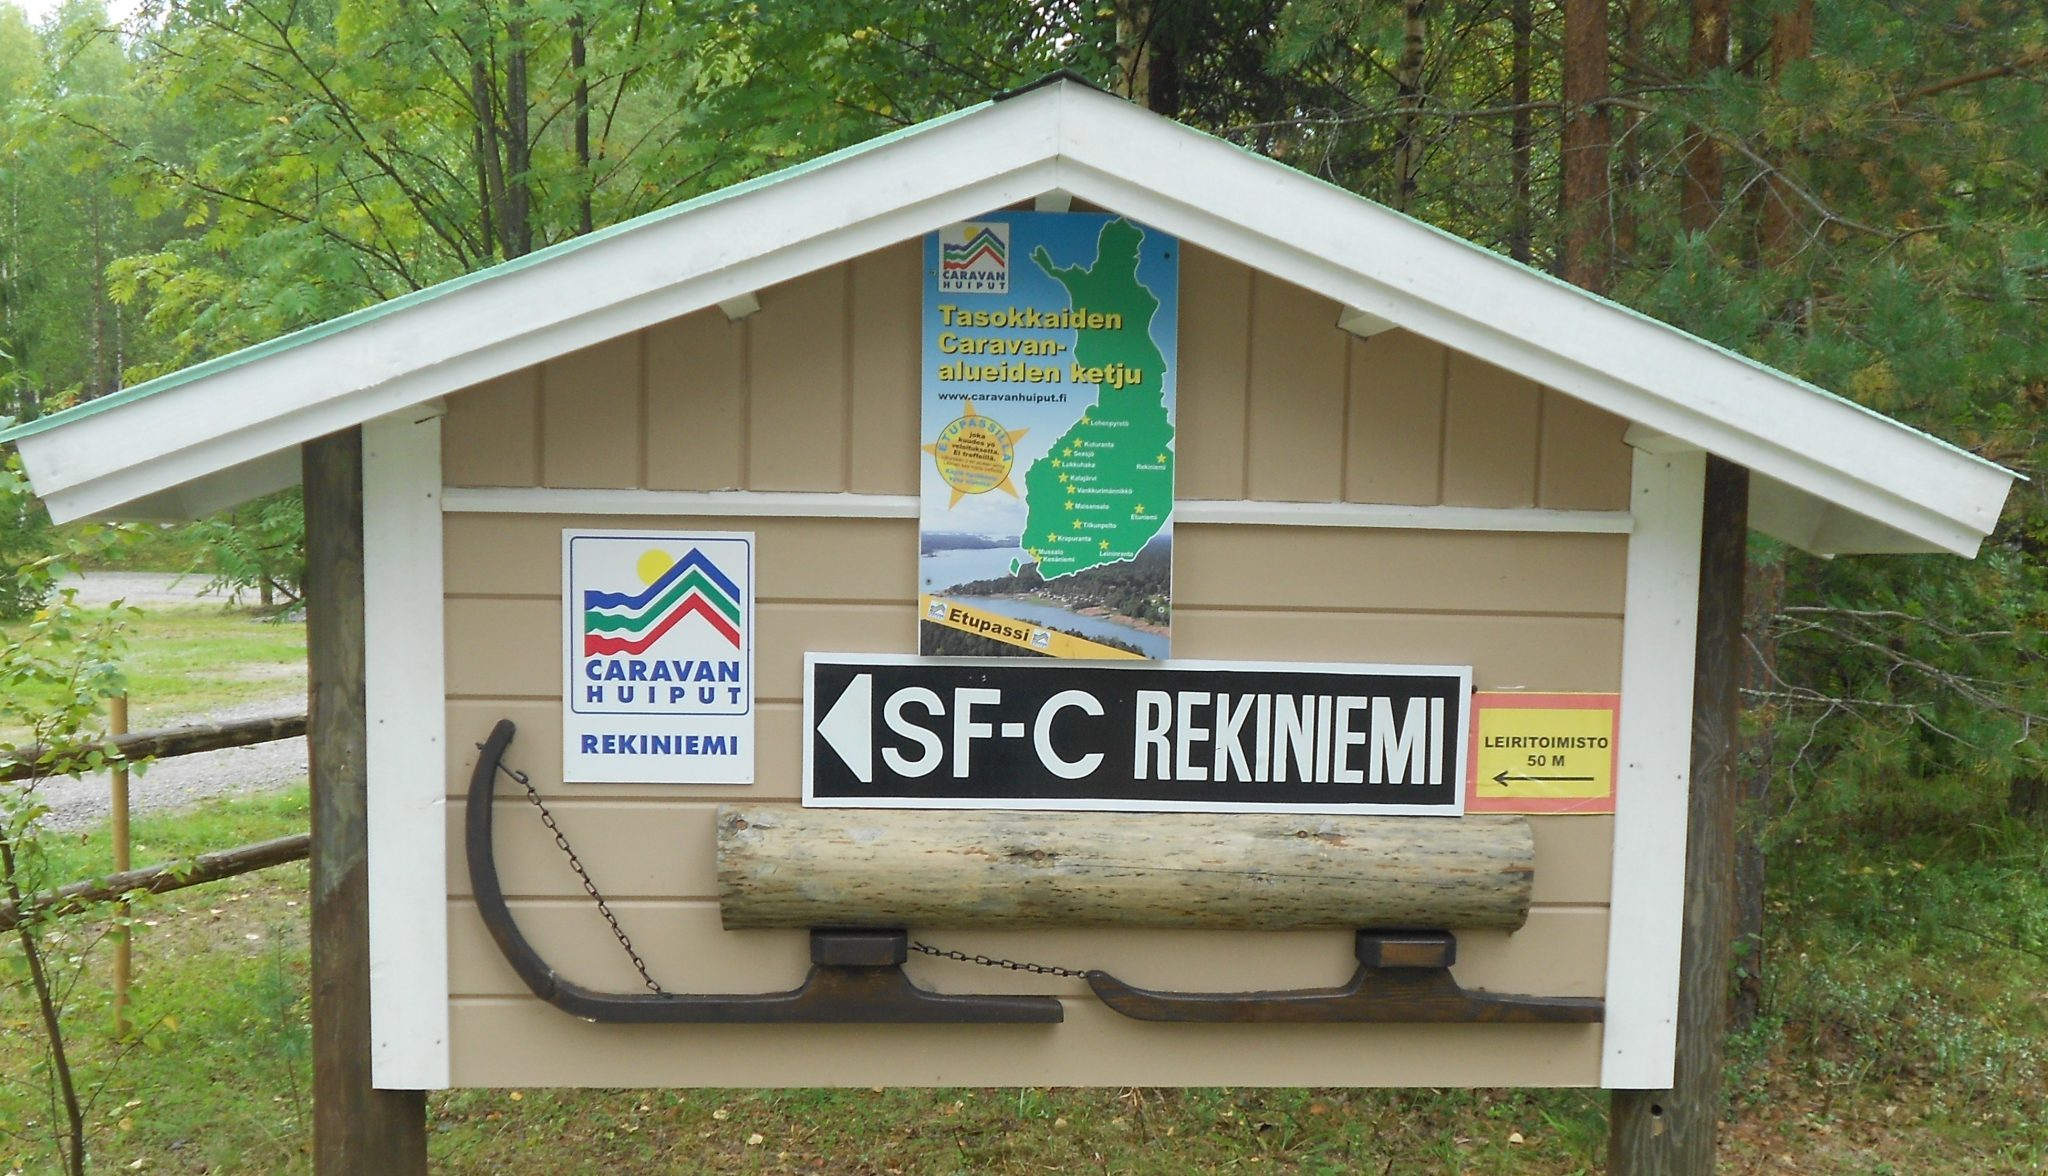 Sign of Rekiniemi